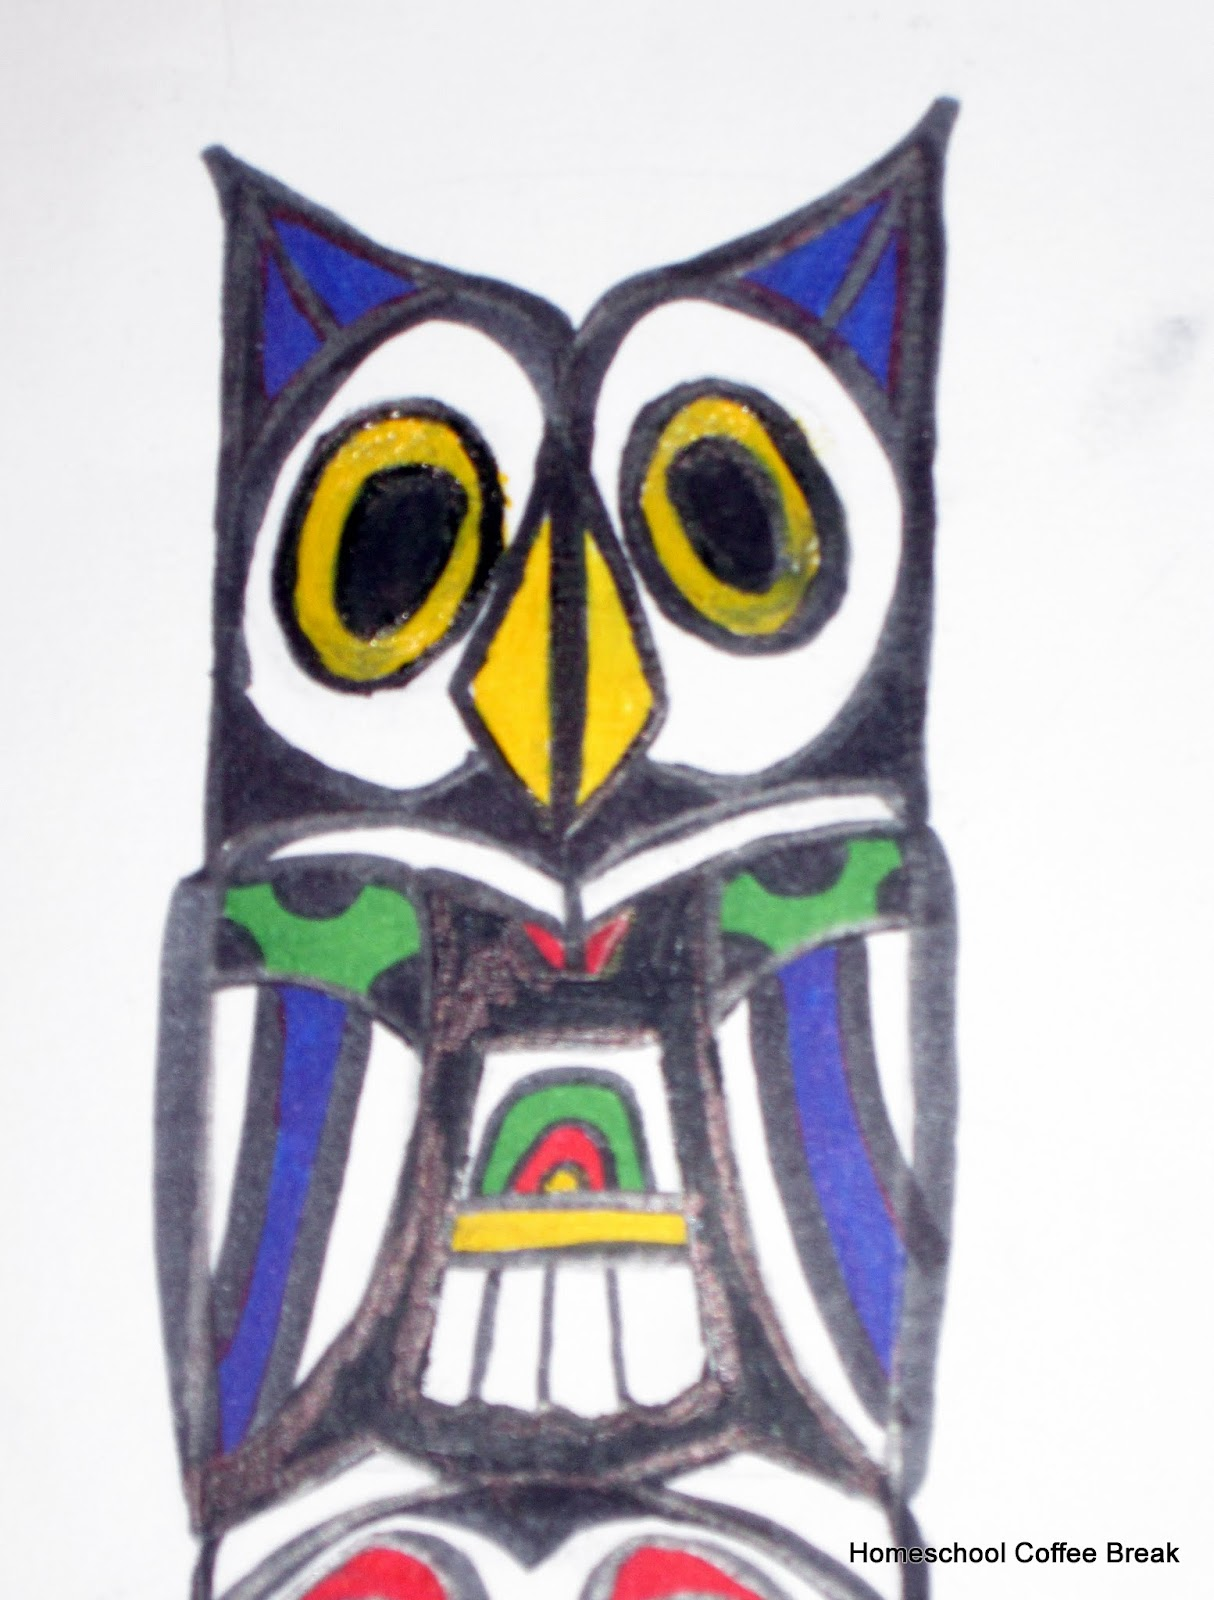 Homeschool Coffee Break Owl On A Pacific Northwest Totem